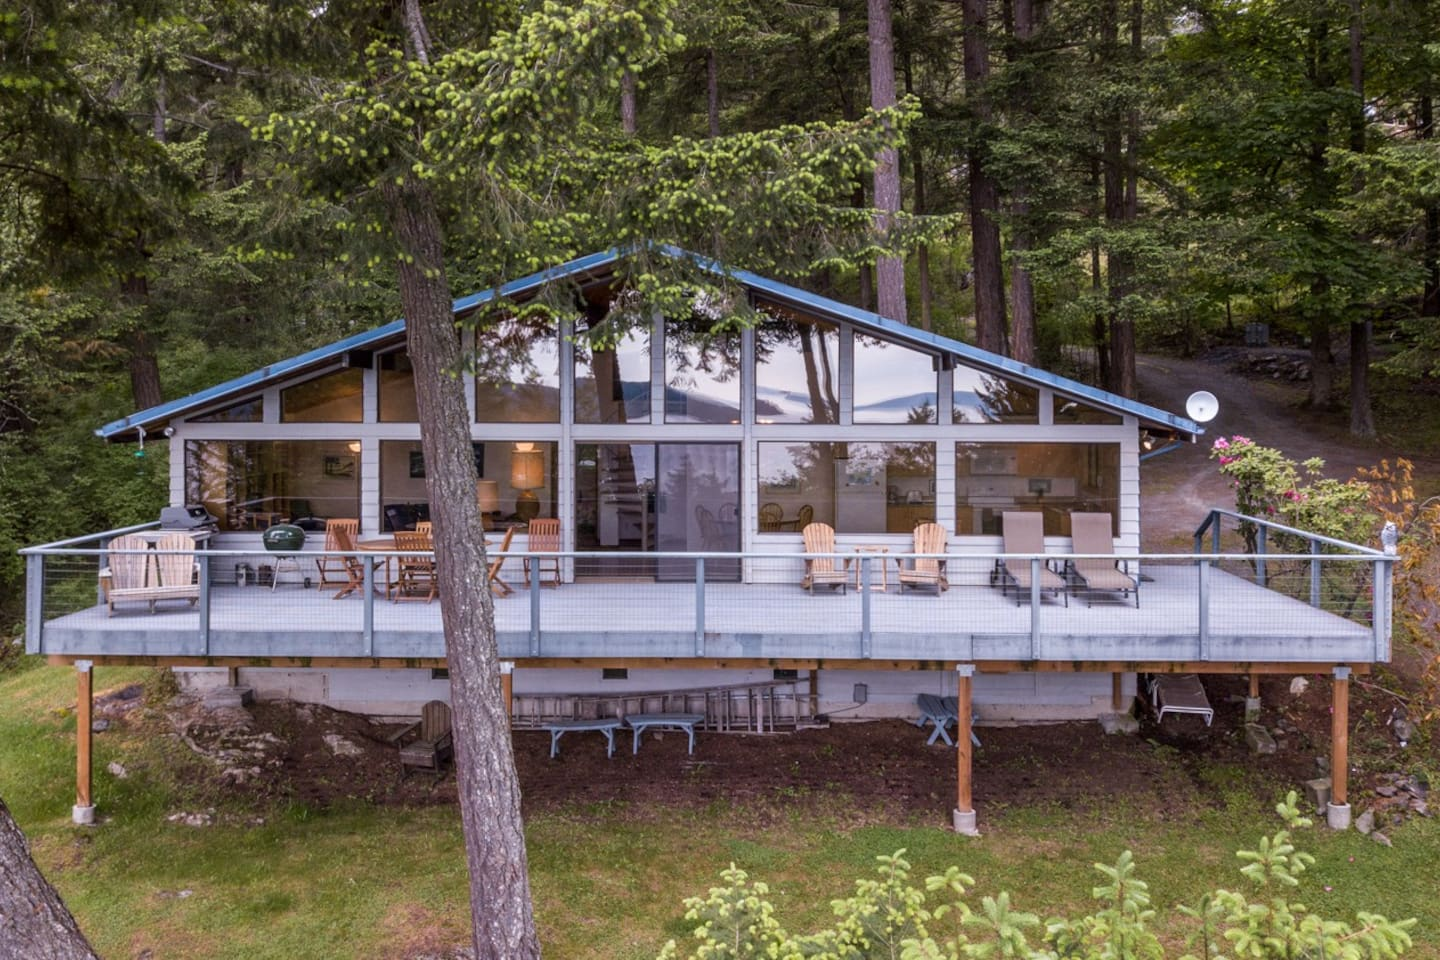 Cascade Bay Overlook is a warm and very comfortable cottage-home with an excellent view looking out over Cascade Bay and East Sound in the distance. Look closely and you can see the view reflected in the home's windows.